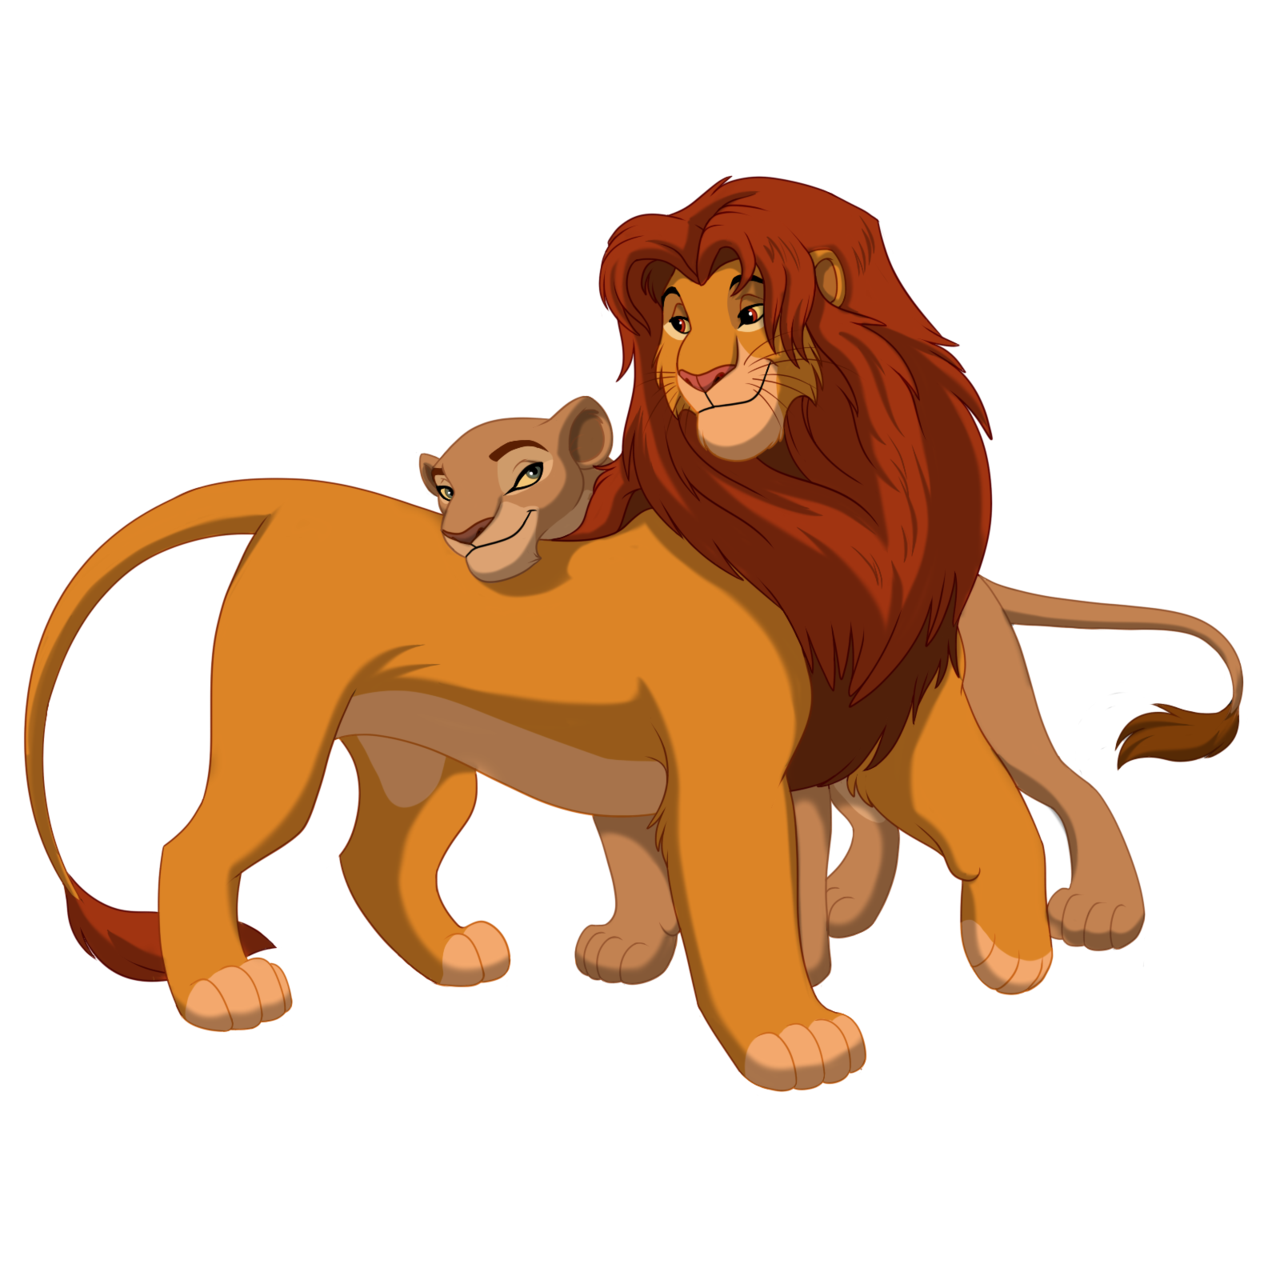 vector black and white download Lion king fathers and mothers images newlyweds HD wallpaper and